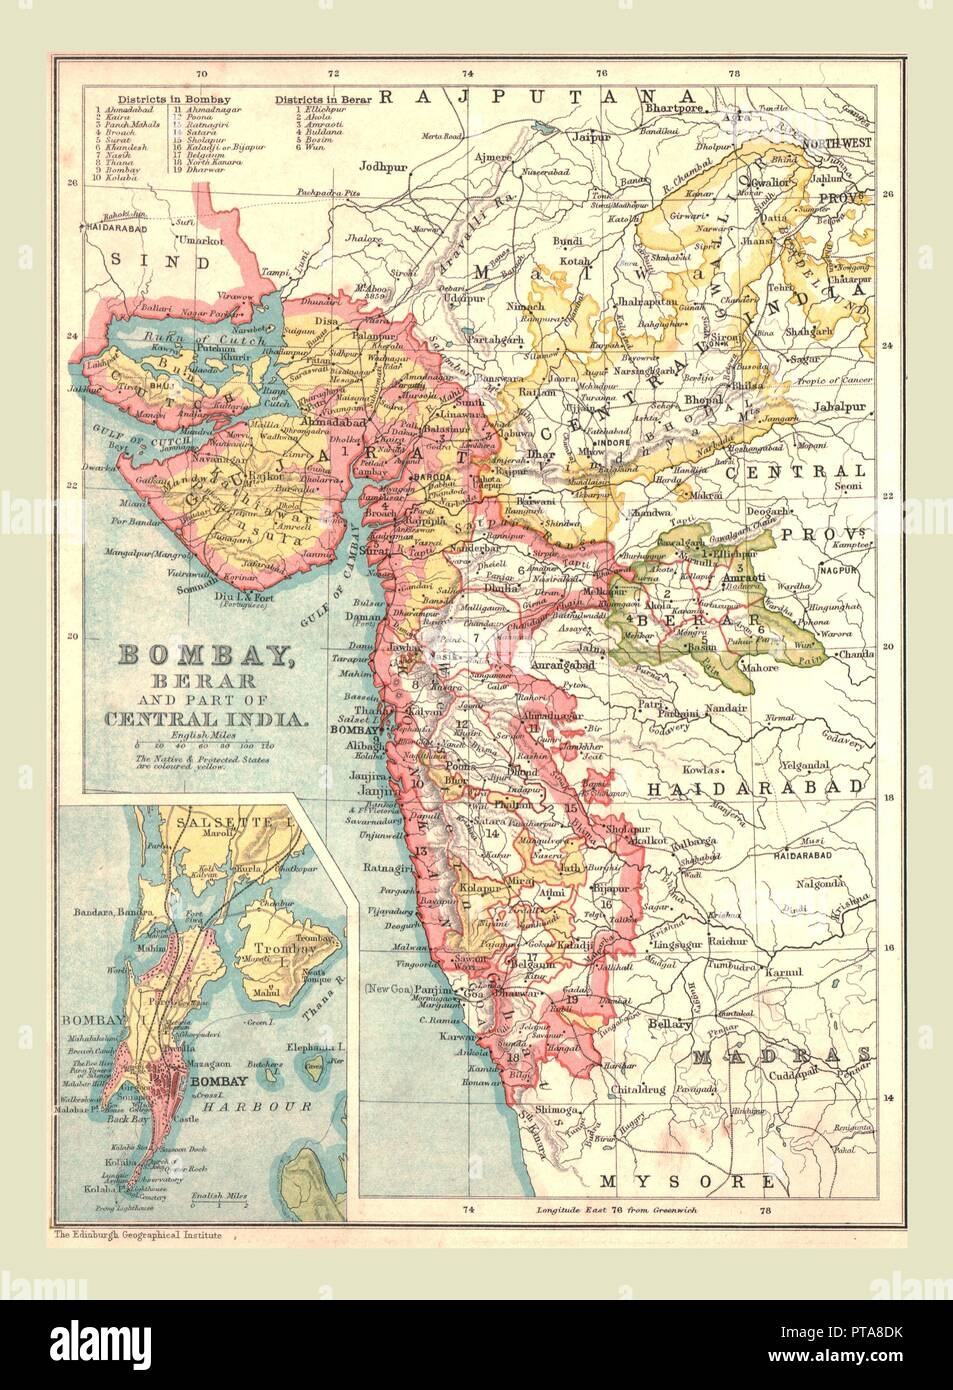 Map Of Bombay Berar And Part Of Central India 1902 From The